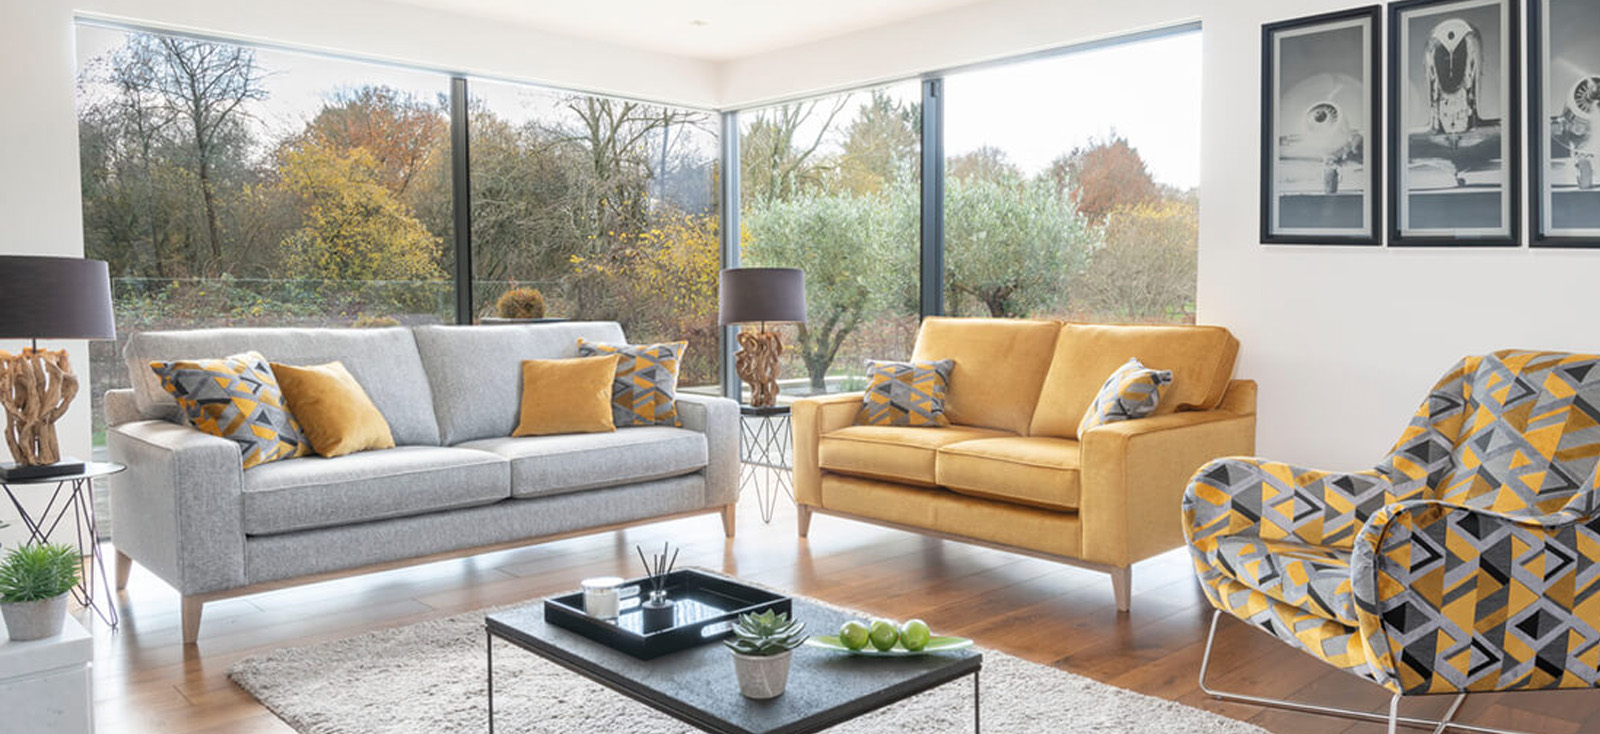 Sofas & Upholstery at Atkinsons